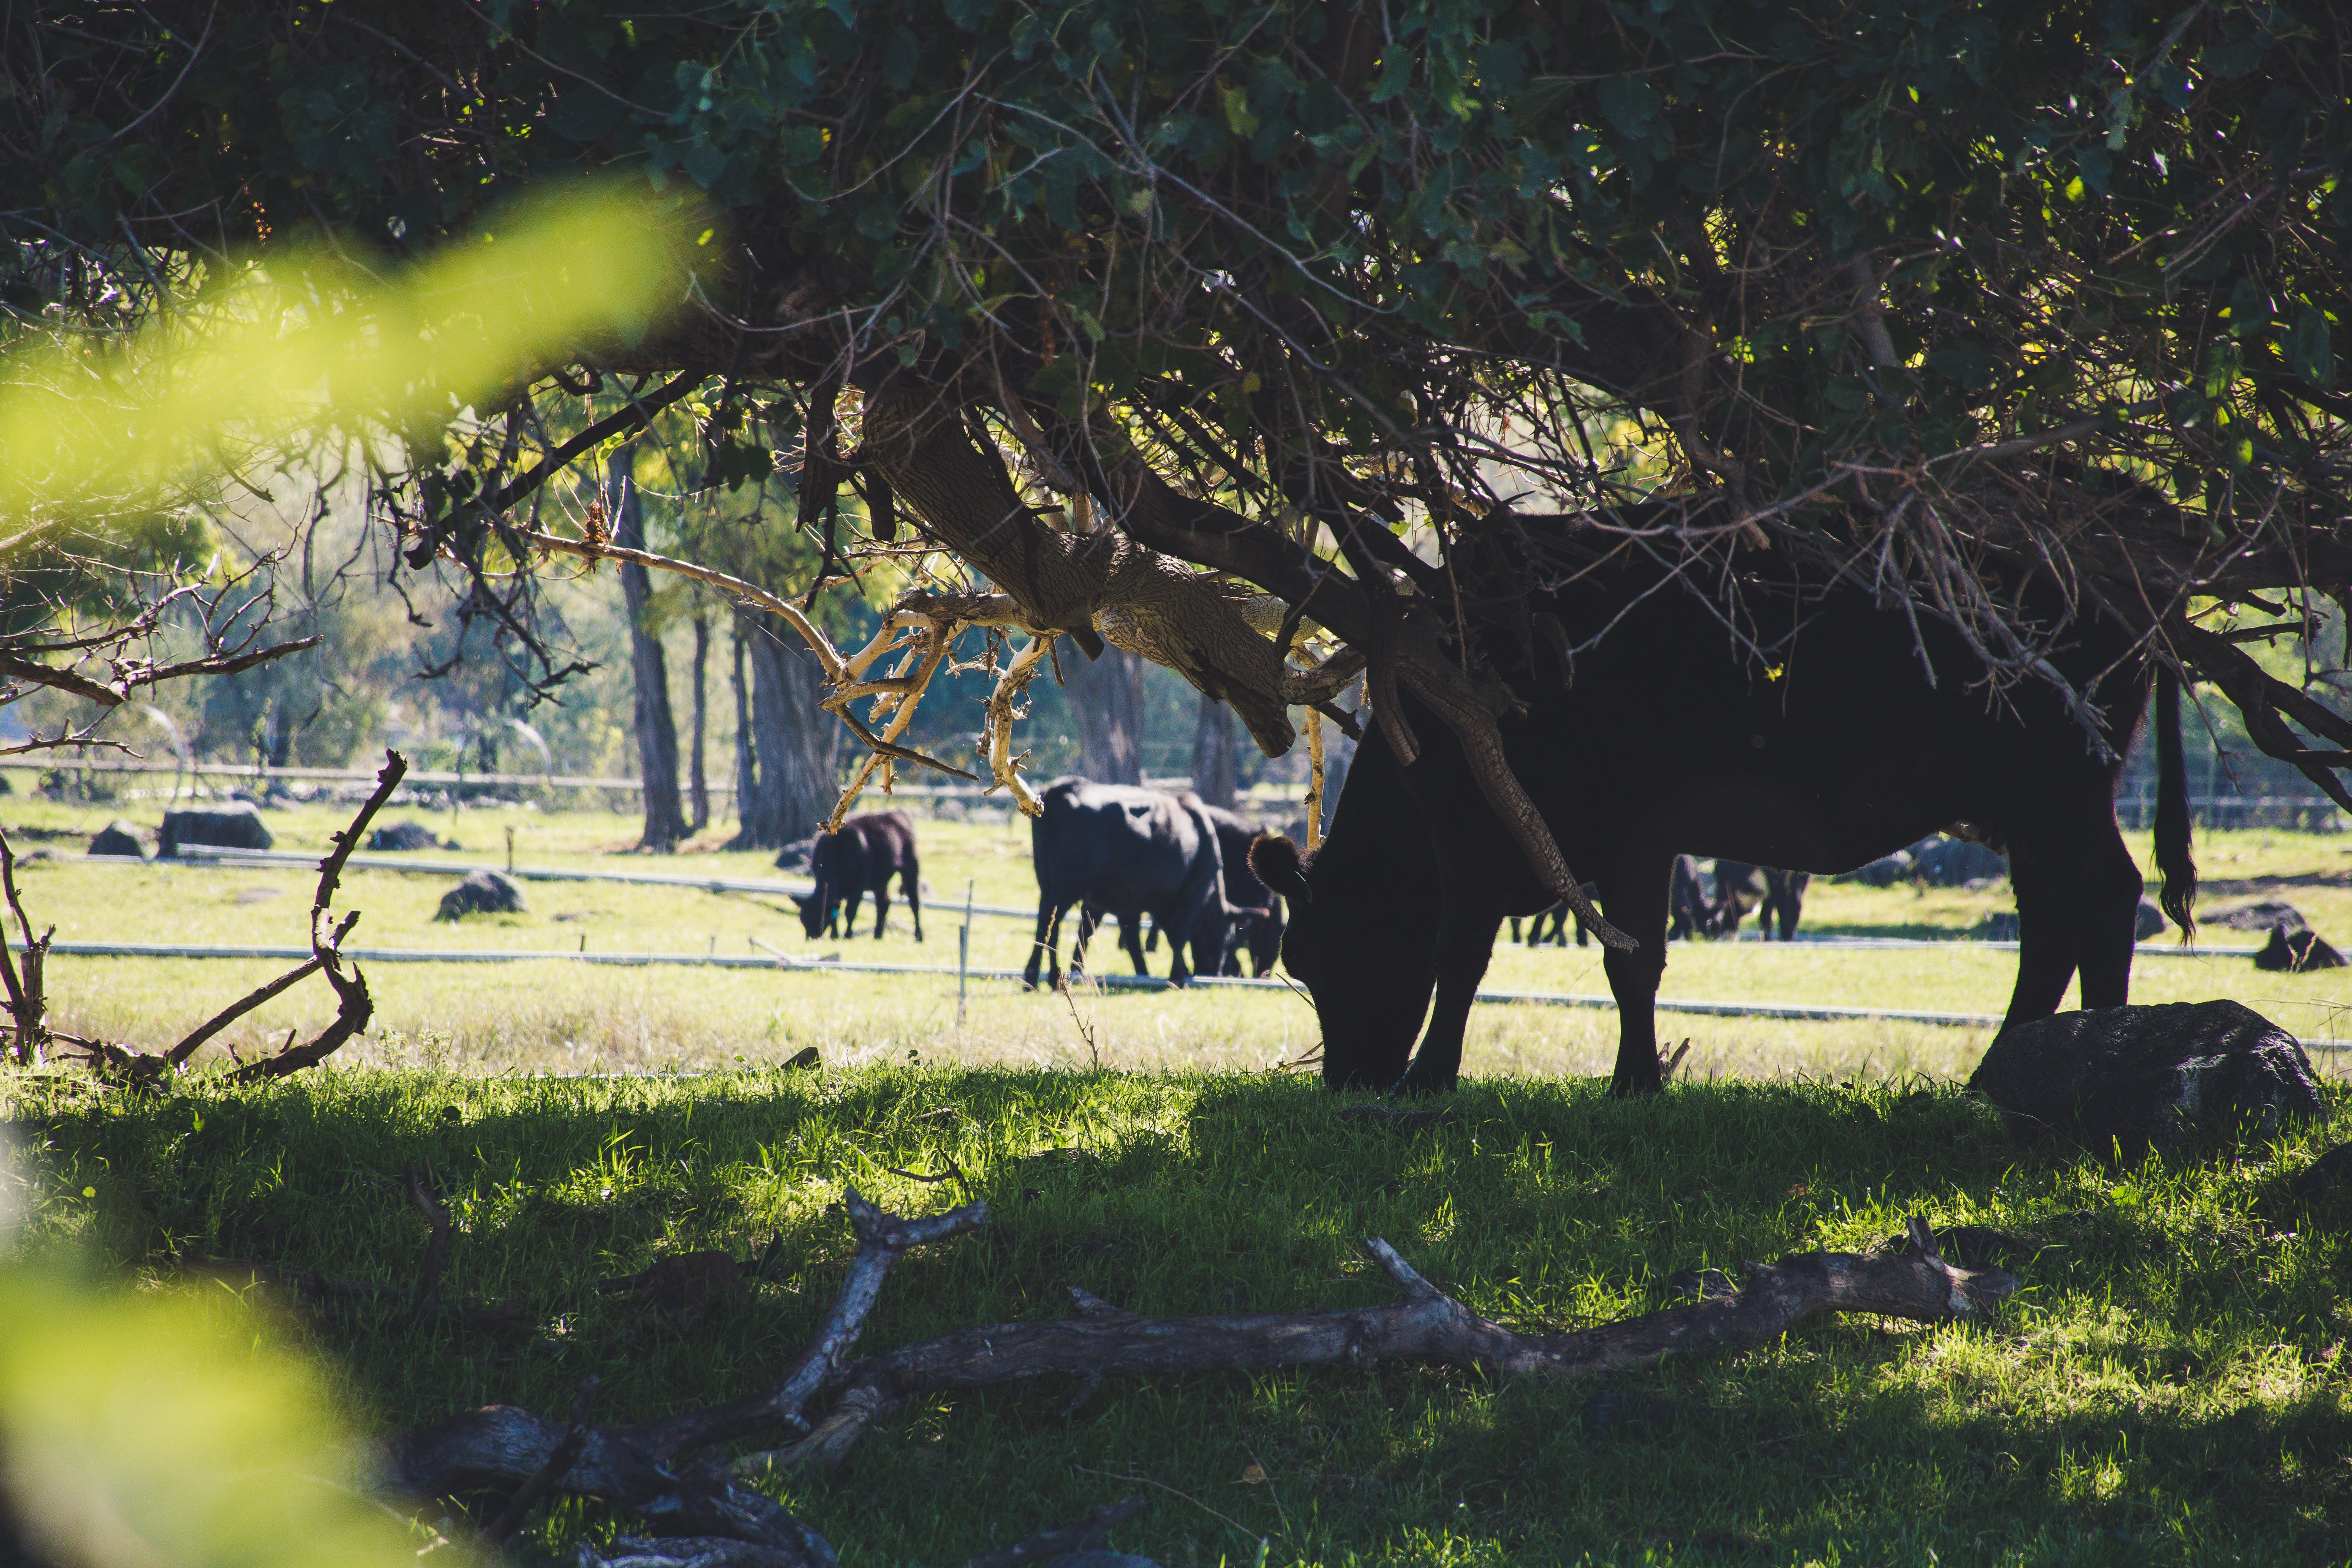 Cow Eating Grass Under Tree